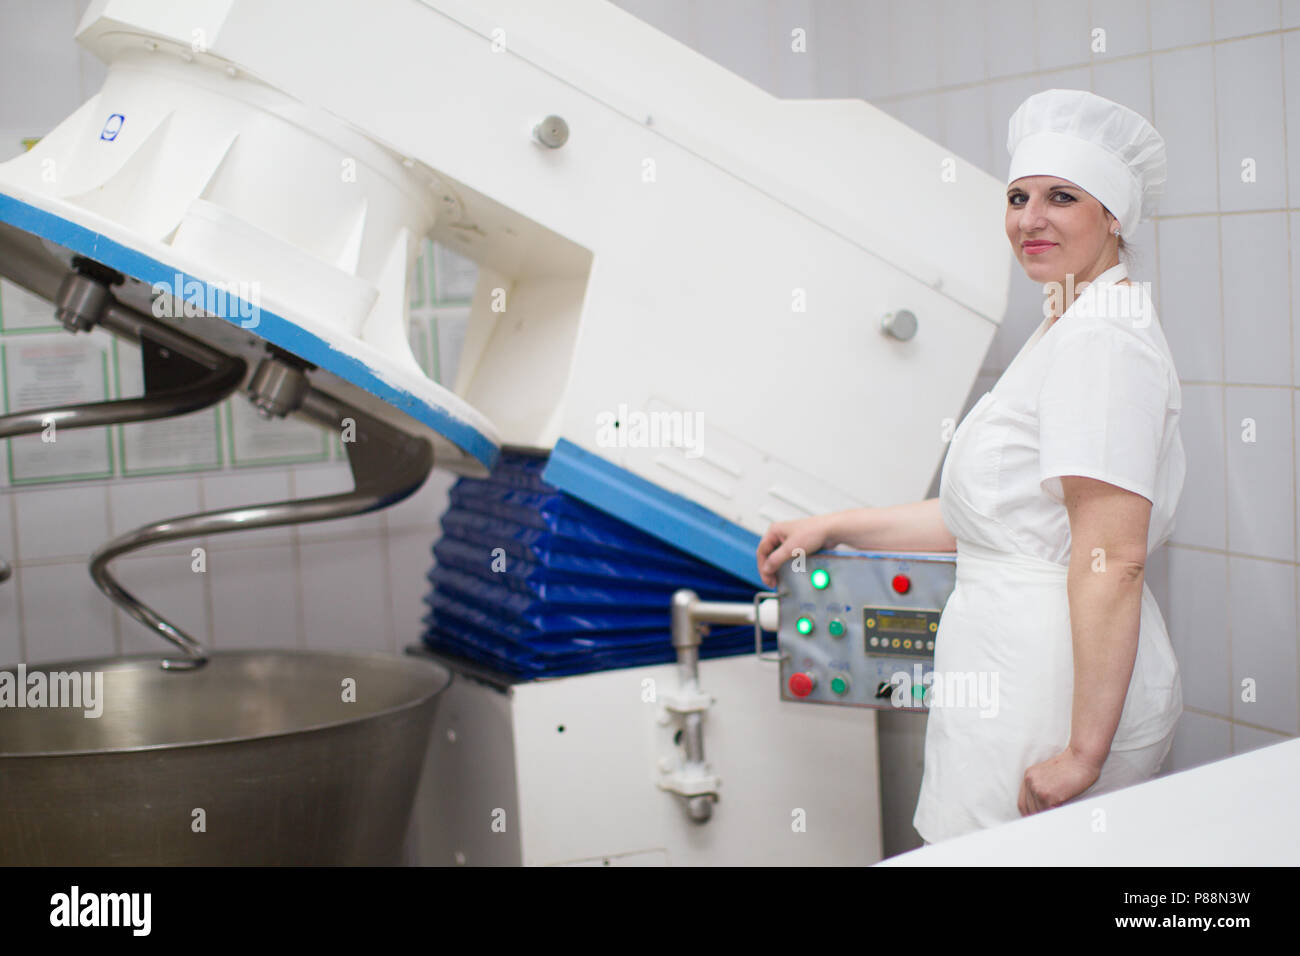 Belarus, the city of Gomel, on April 26, 2018. Gomel plant for the production of bread.Woman cook with industrial mixer.The worker of a bakery - Stock Image